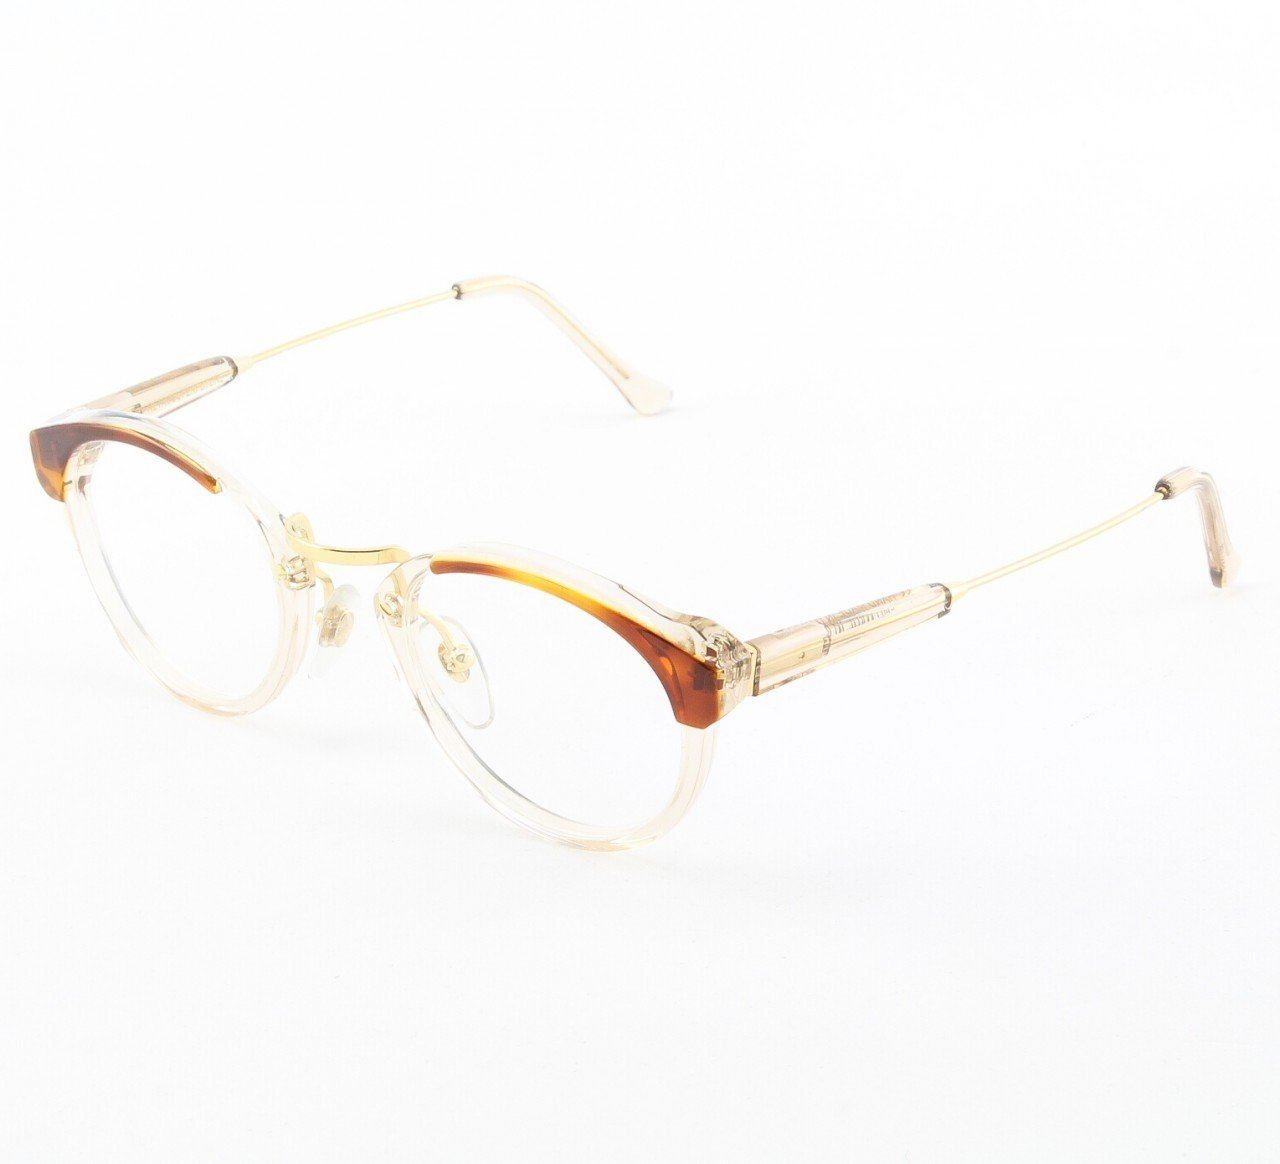 Super Panama 962 Eyeglasses Brown Crystal with Clear Zeiss Lenses by RETROSUPERFUTURE